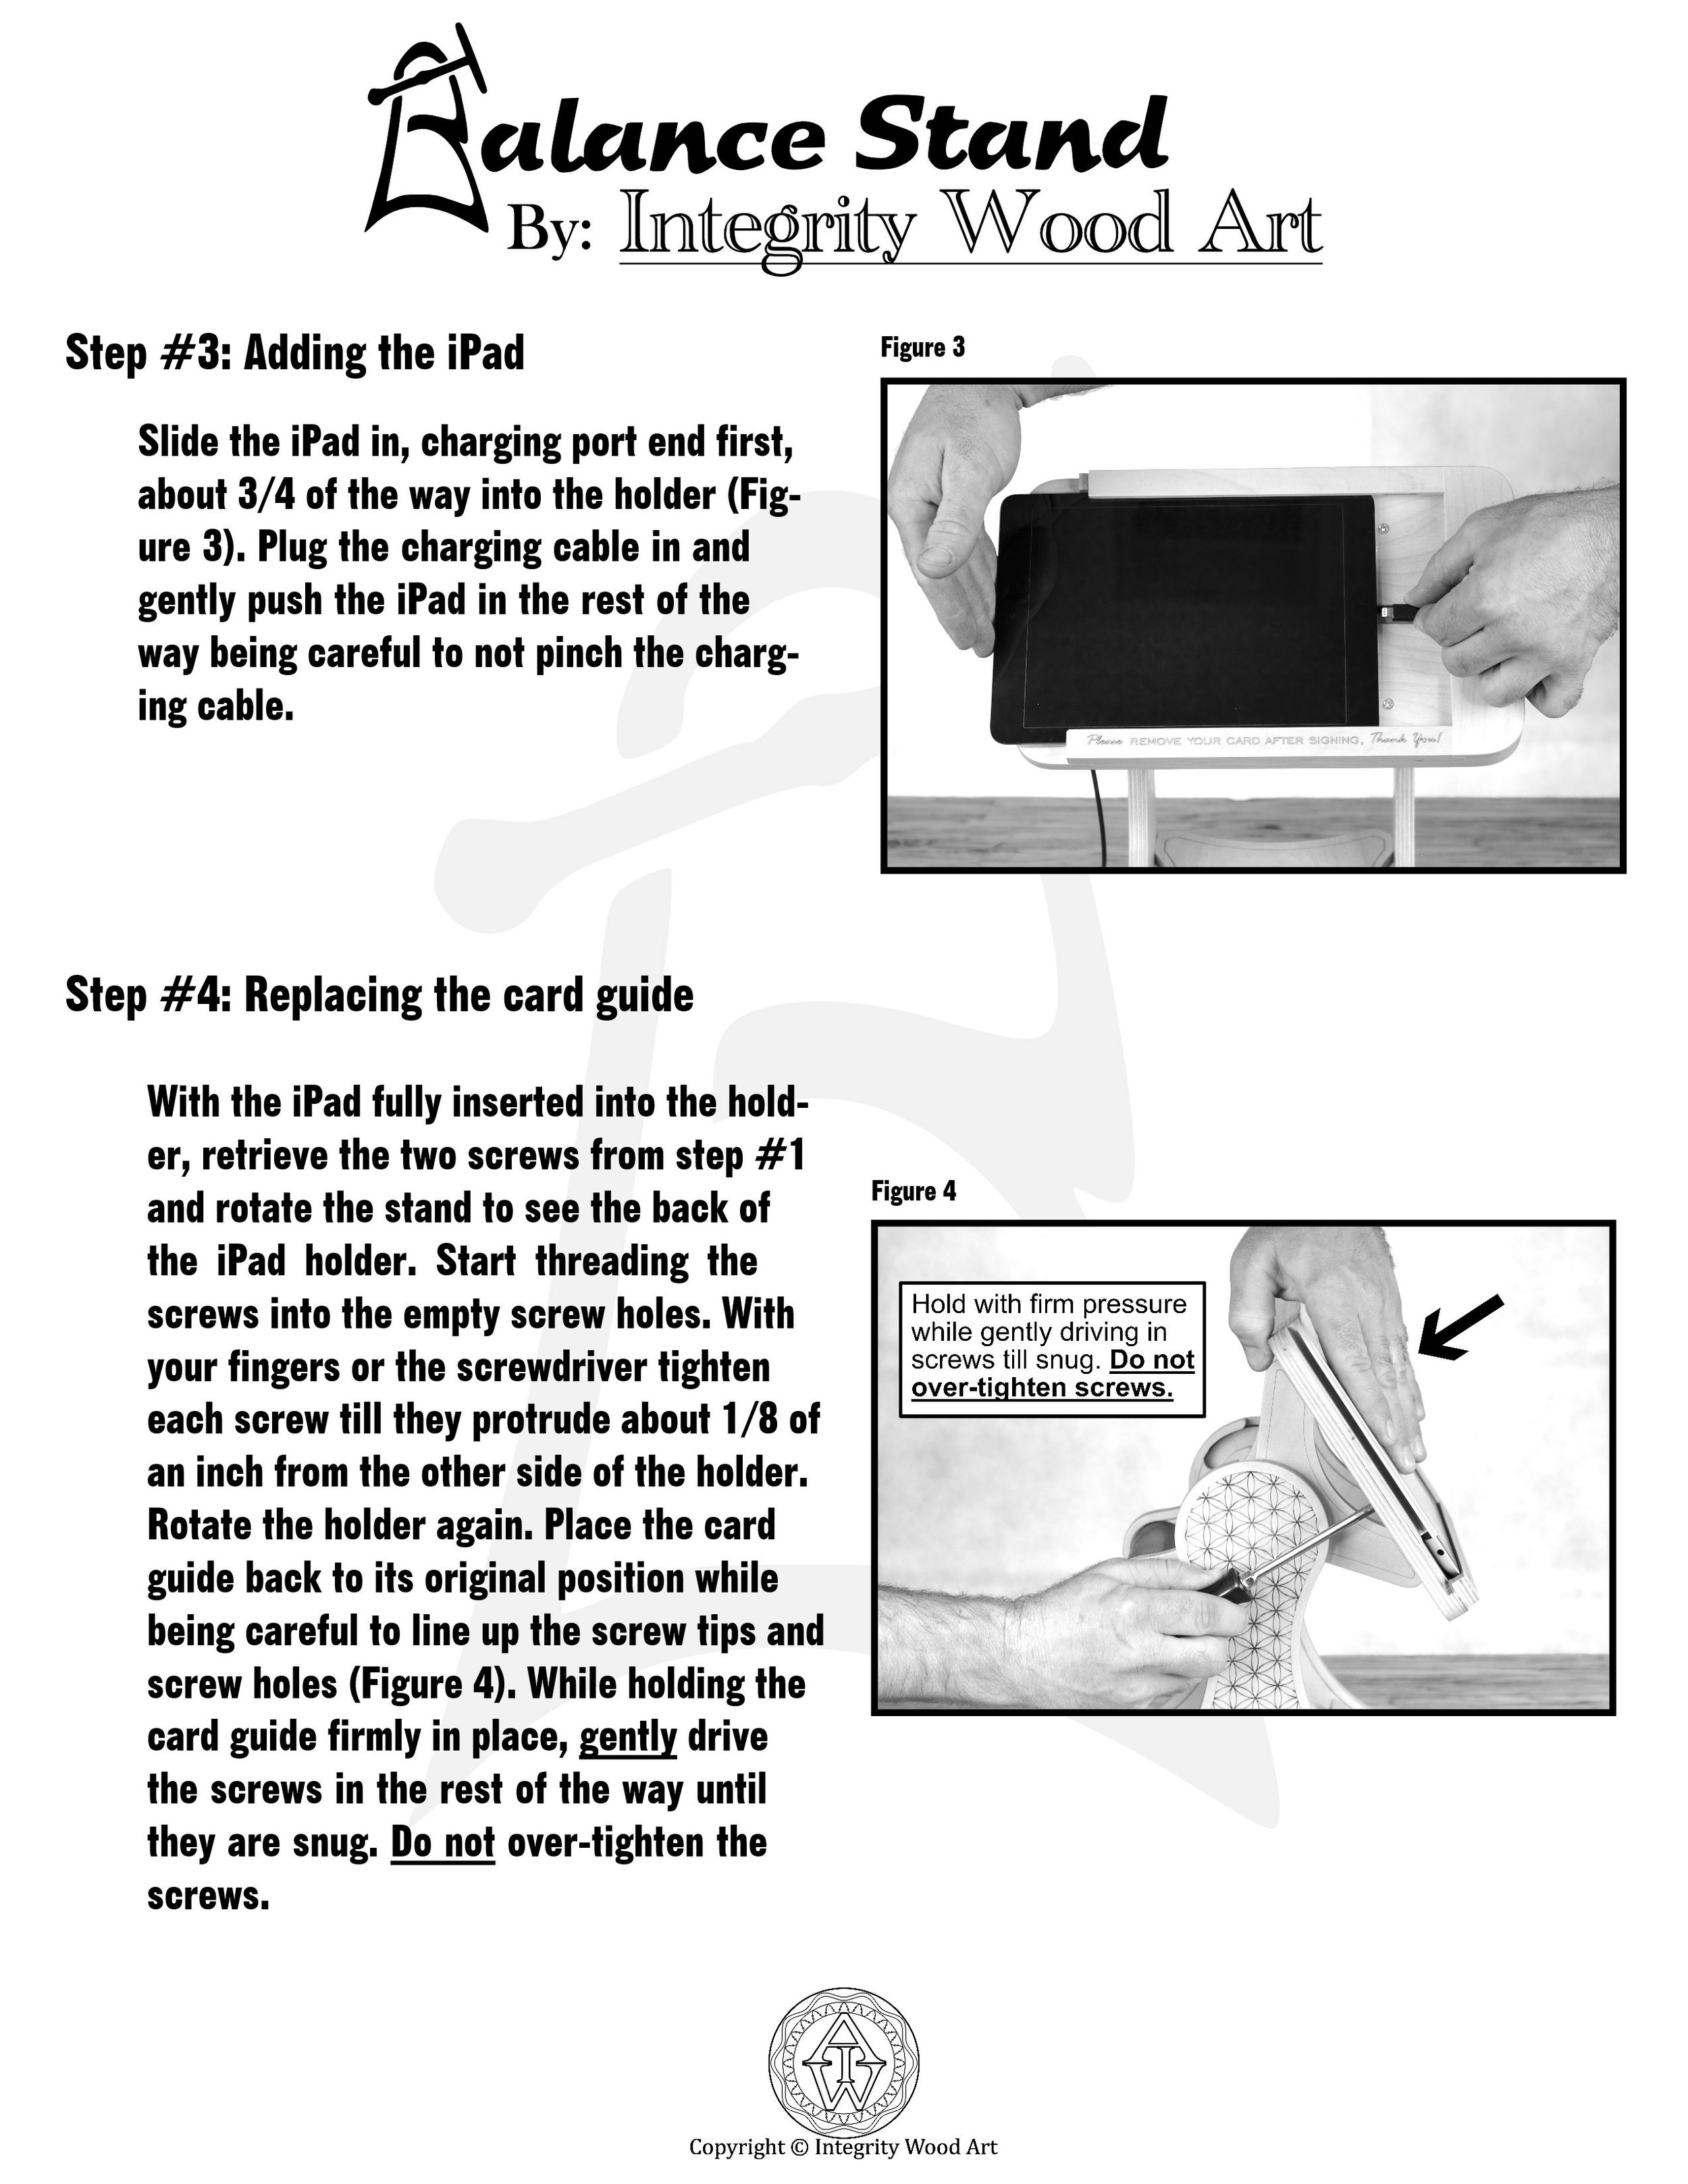 Balance stand instructions v.2 page 2.jpg